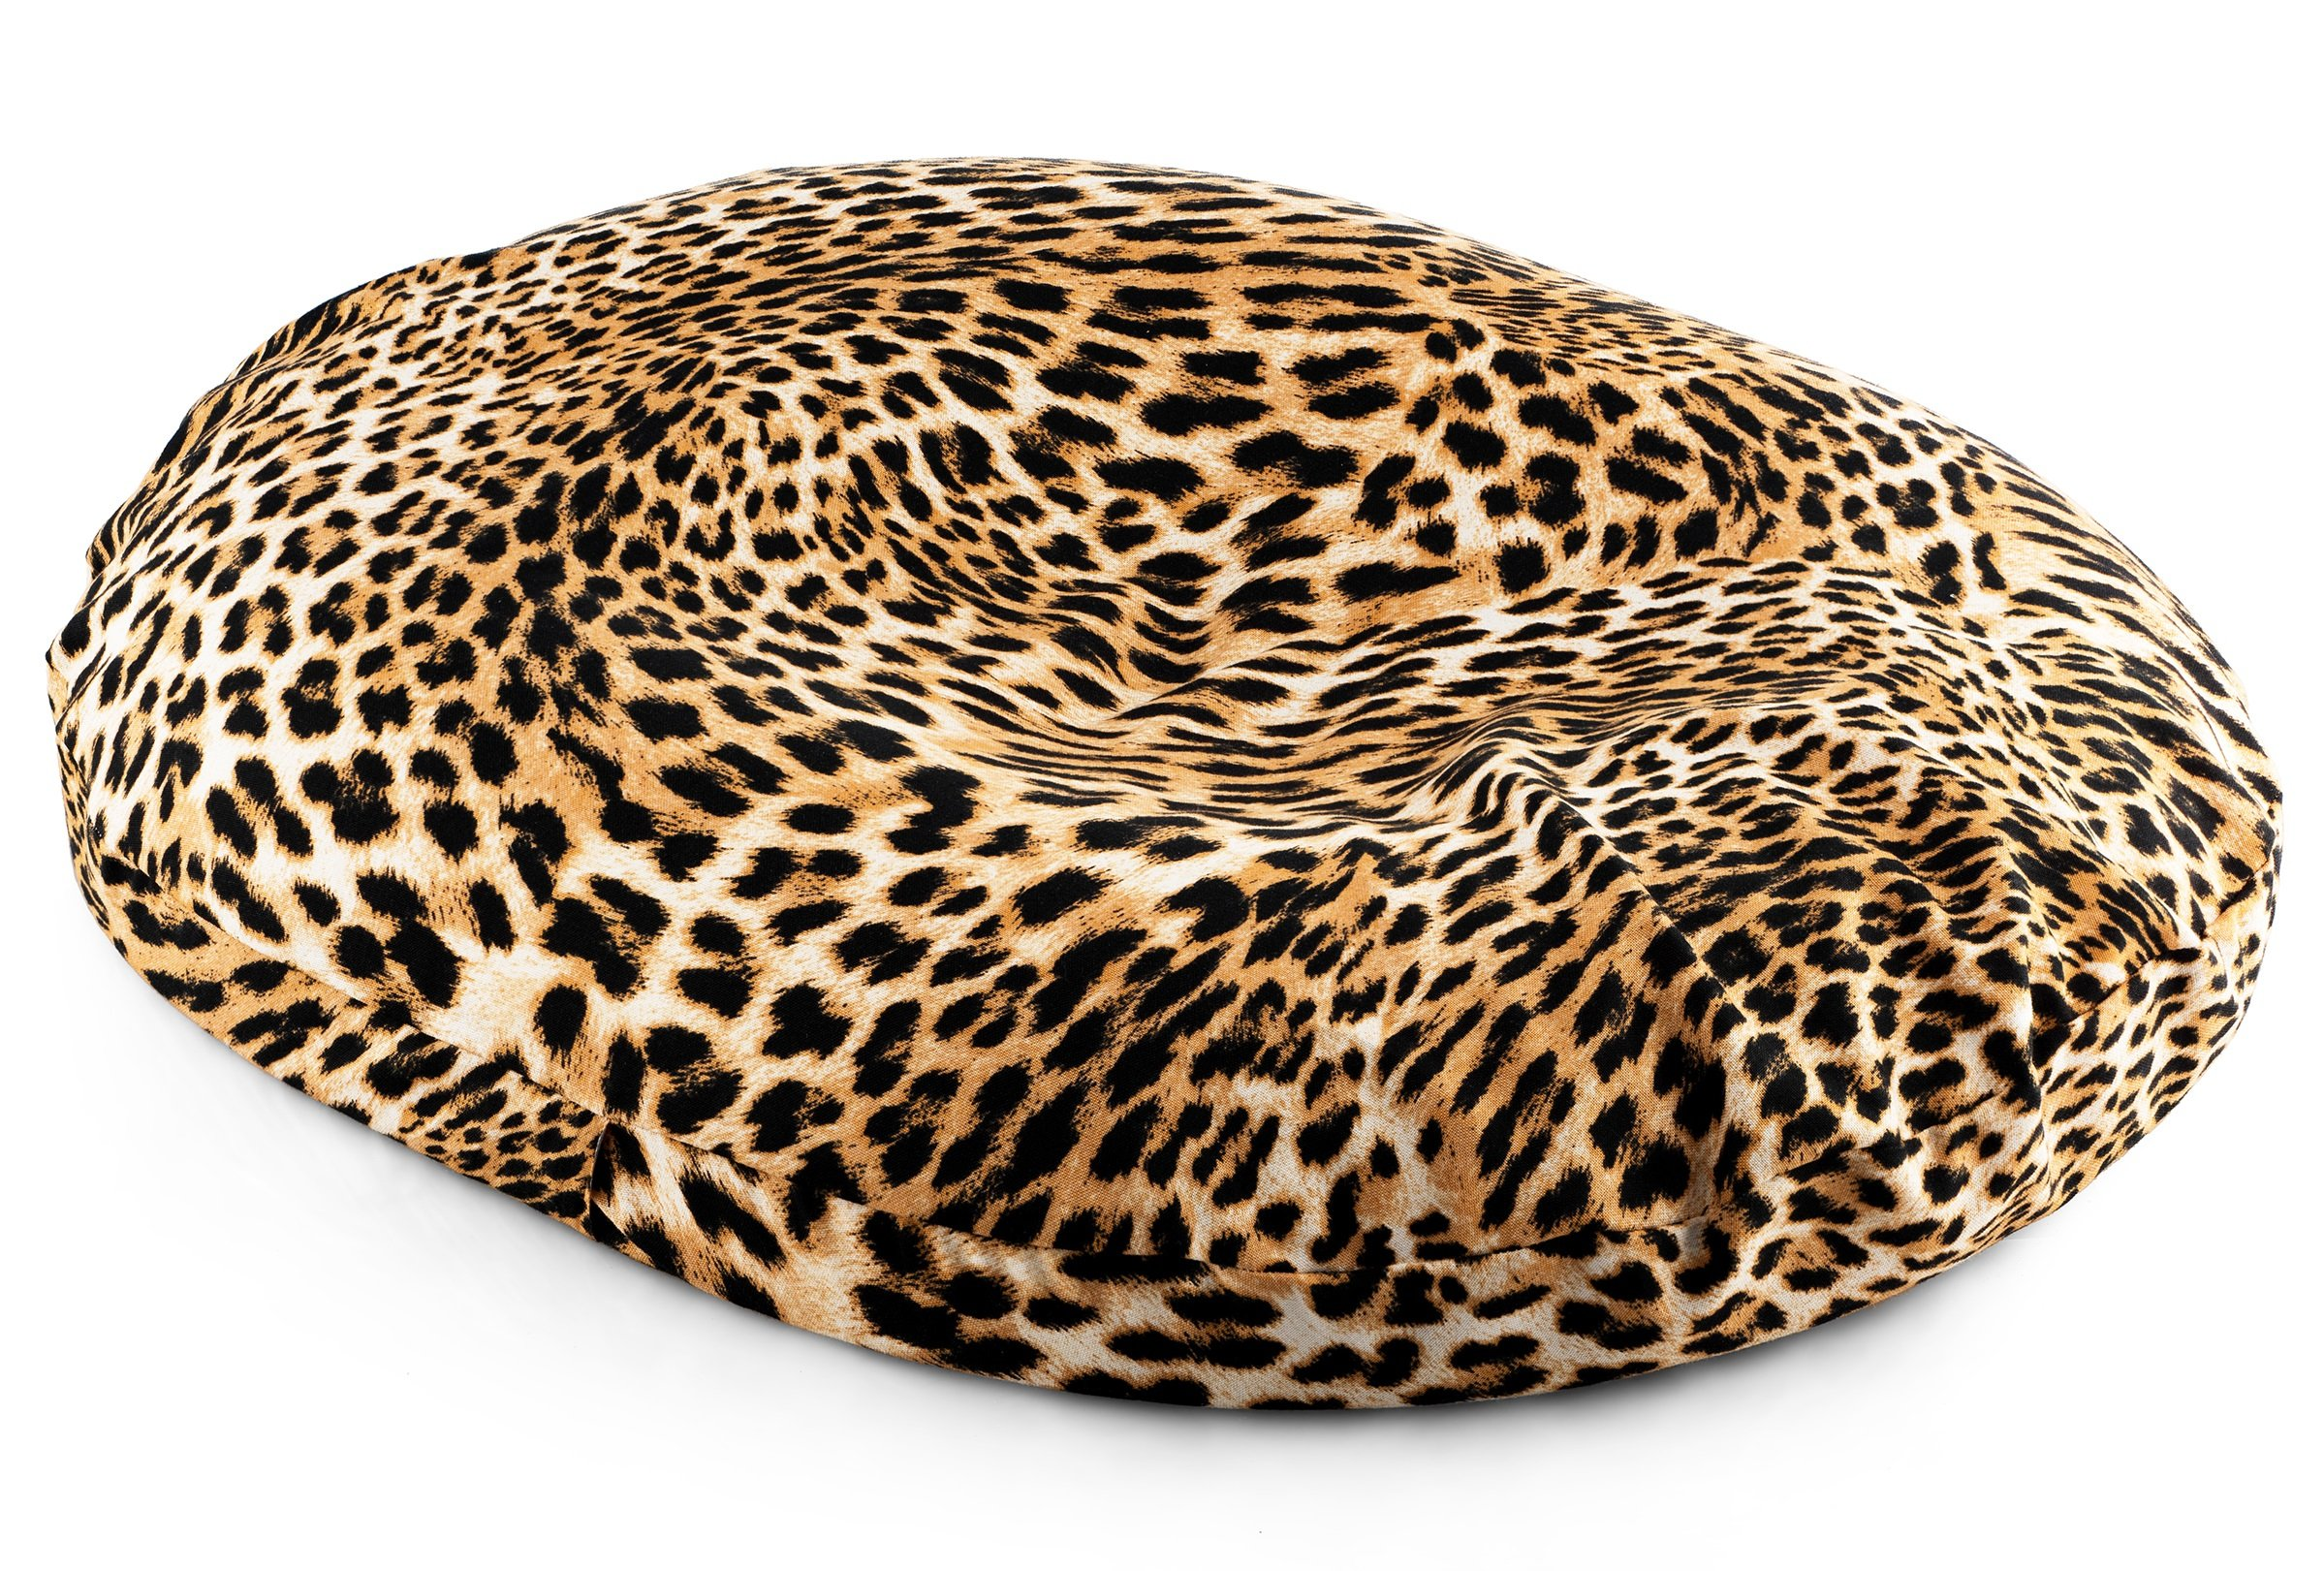 BodyHealt Donut Seat Ring Cushion Comfort Pillow for Hemorrhoids, Coccyx, Prostate, Pregnancy, Post Natal Pain Relief, Surgery (Leopard, 18 Inch)